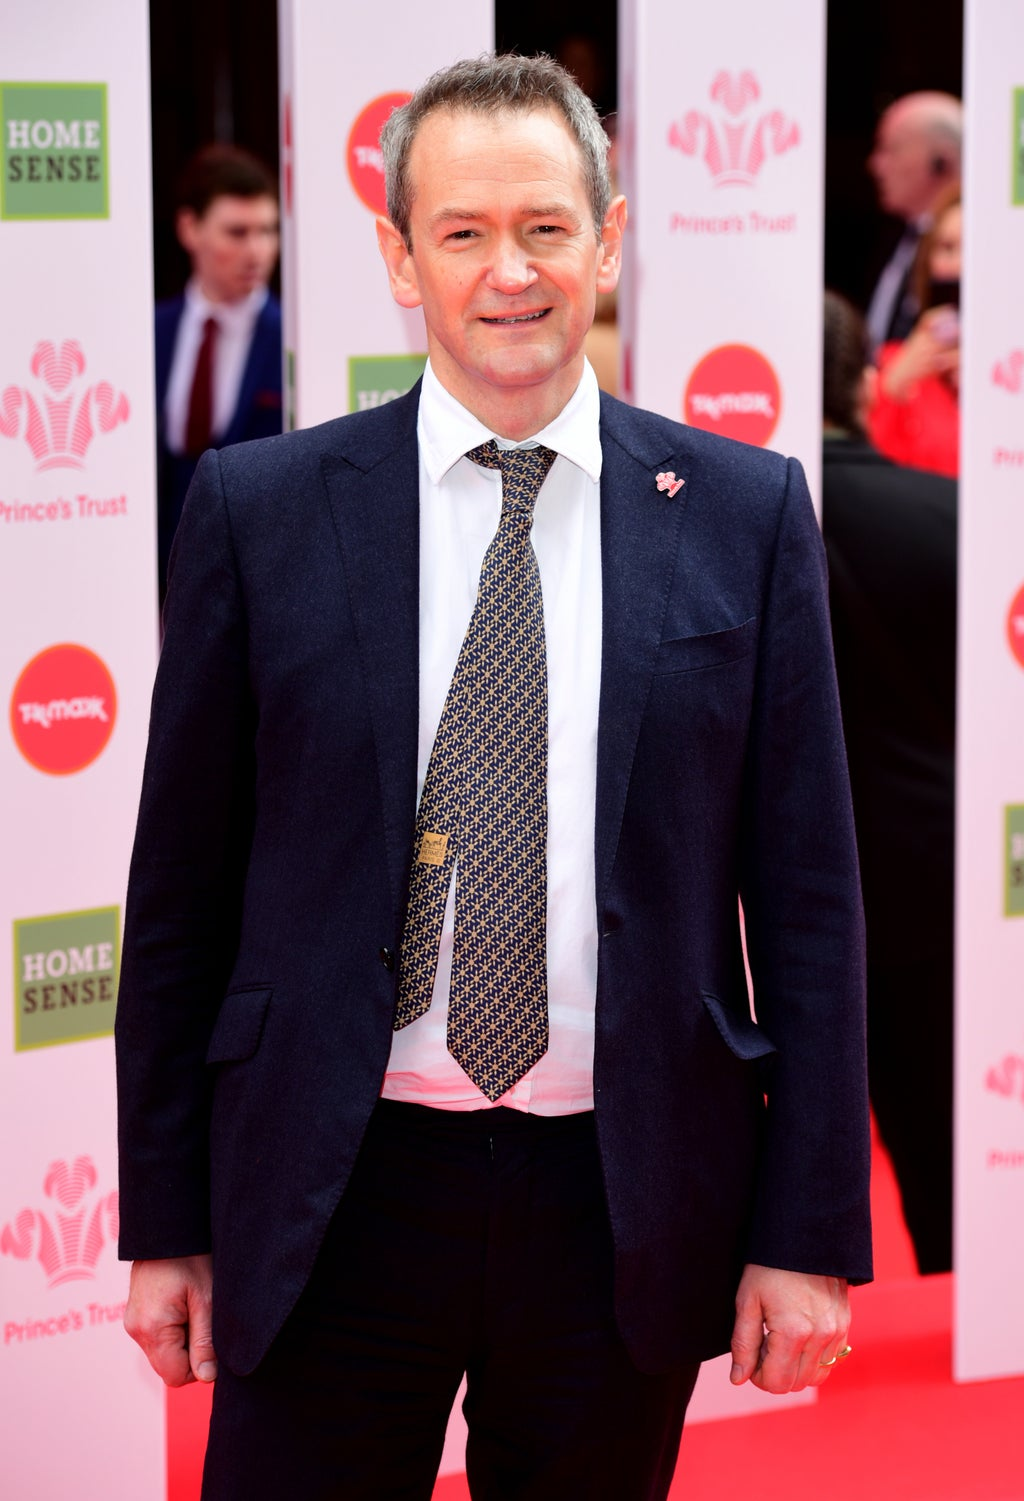 Alexander Armstrong gears up for 'demanding' 24 concerts in 24 hours challenge